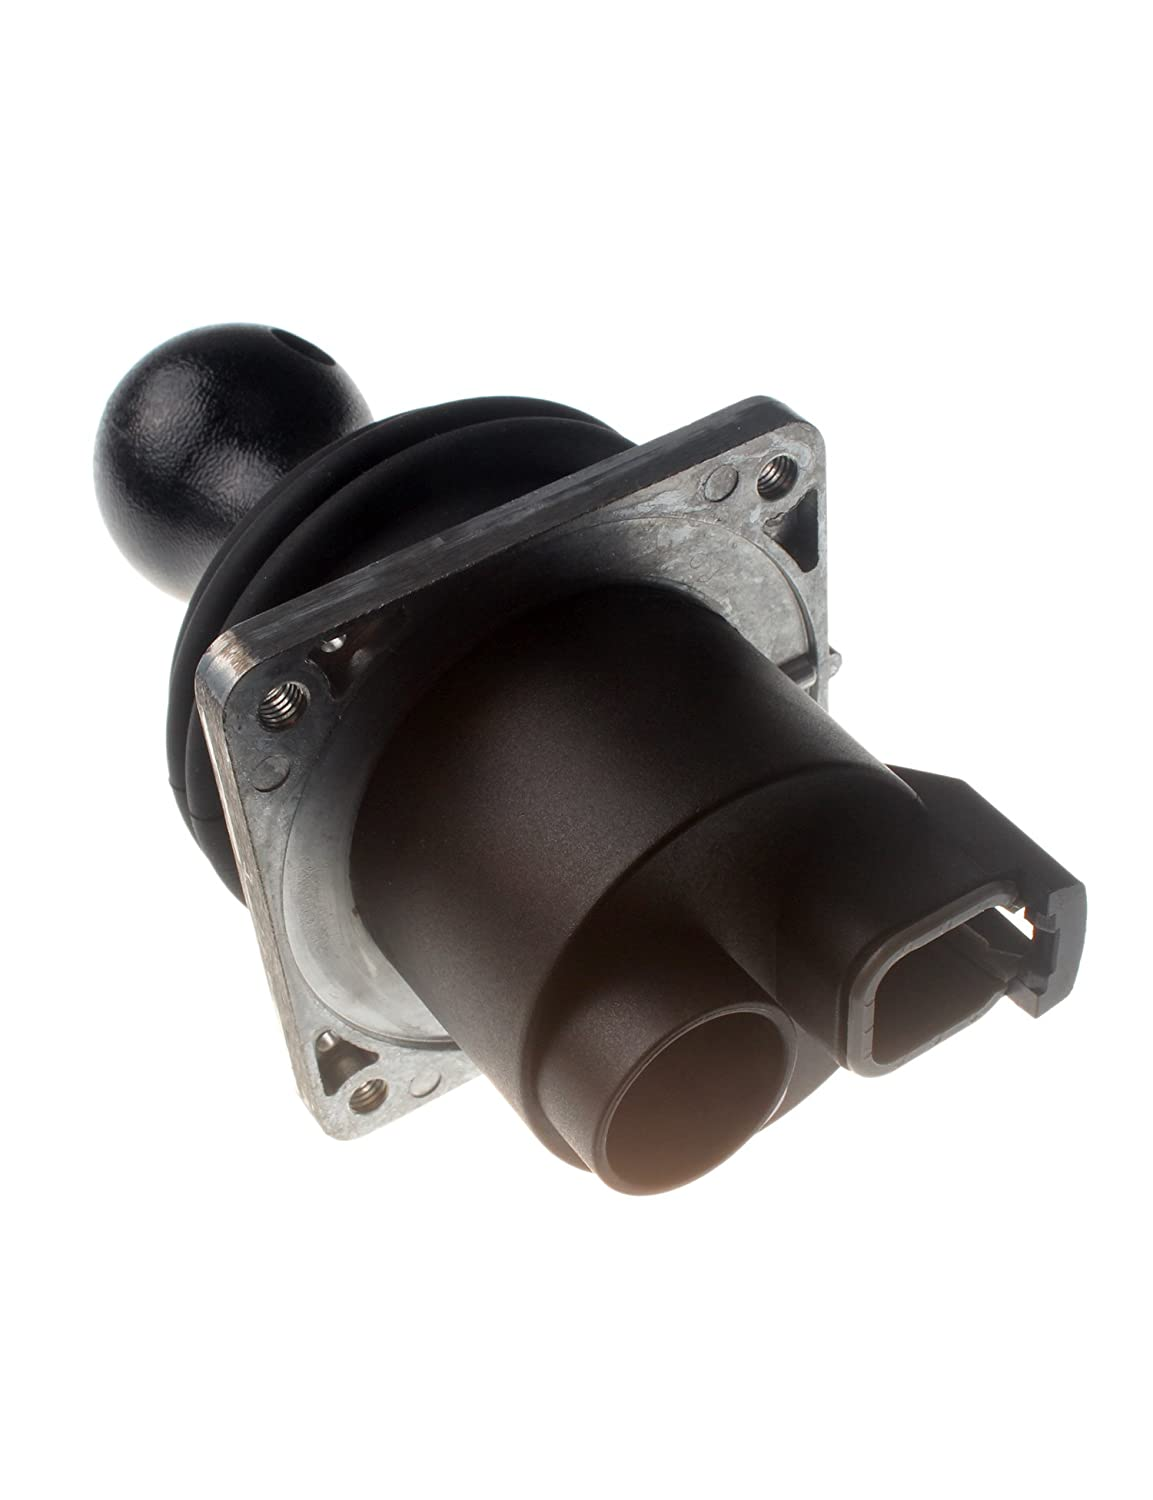 Max Cheap mail order sales 72% OFF FridayParts Single Axis Joystick 6239 101174 101174GT Controller